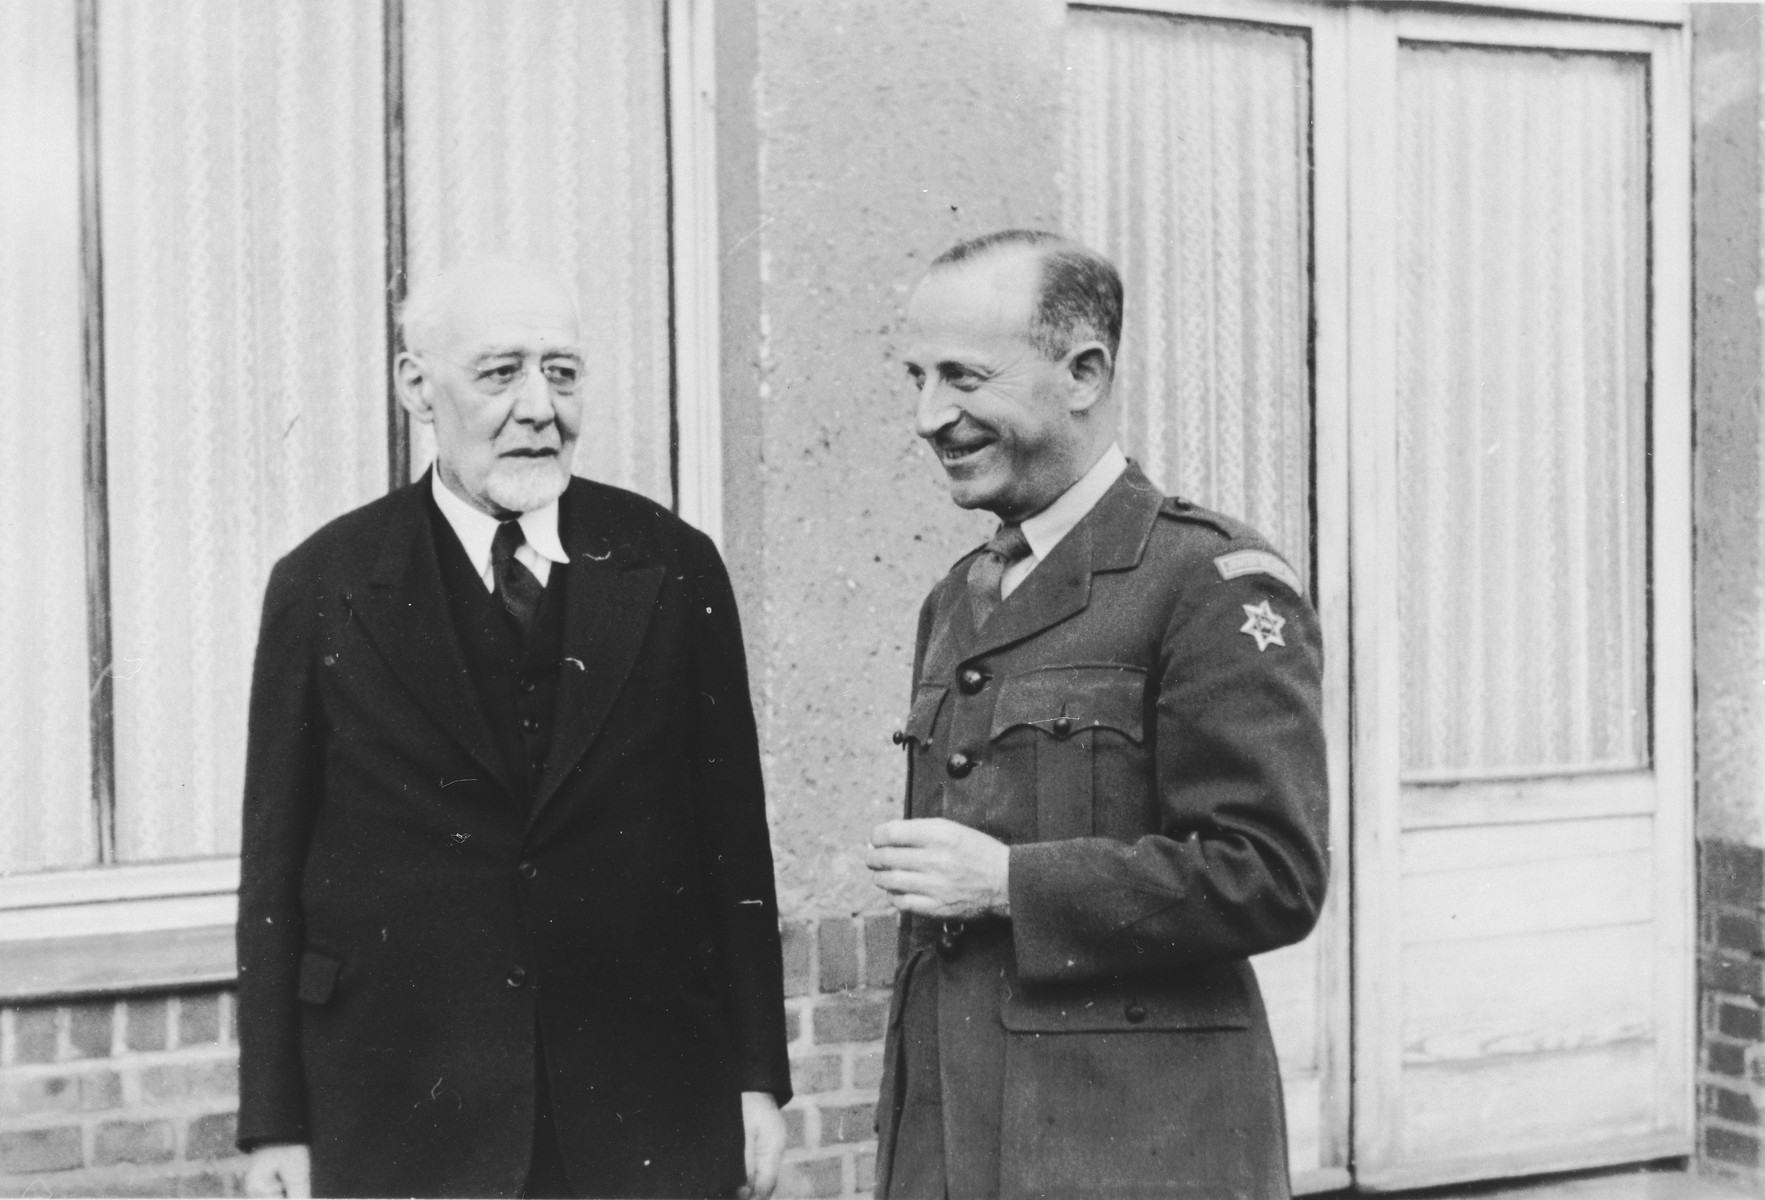 Rabbi Leo Baeck (left) poses with Ernst G. Lowenthal (right) during his three week visit to Germany.  Baeck was greeted at the airport by Norbert Wollheim, Chairman of the Central Committee of Jews in the British Zone.  Baeck's trip included participation in an evangelical congress in Darmstadt on October 12, as well as numerous appearances before local Jewish communities.  Ernst G. Lowenthal was born in Koln, Germany in 1904.  After receiving his doctorate in sociology, he worked for the Central Association of German Citizens of the Jewish Faith from 1929 to 1938.  He also edited the Journal for the History of the Jews in Germany.  In 1939 he immigrated to England.  A year after the war he returned to Germany, where among other roles, he served as director of the Jewish Relief Unit in the British Occupation Zone from 1947 to 1948.